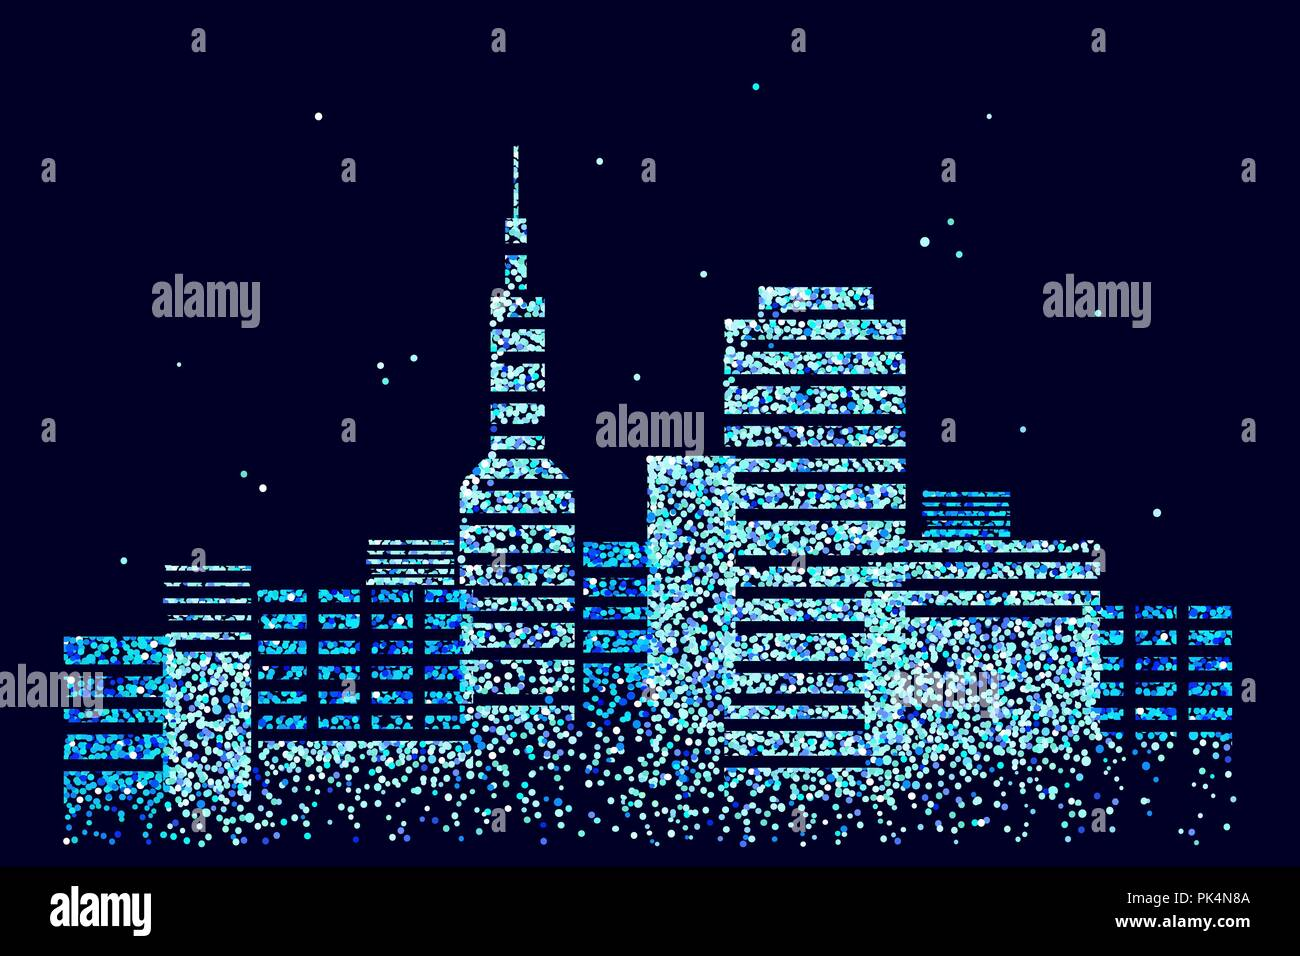 Smart city 3D spotted dots. Intelligent building automation system business concept. Web online computer binary code. Architecture urban cityscape technology sketch banner vector illustration - Stock Image